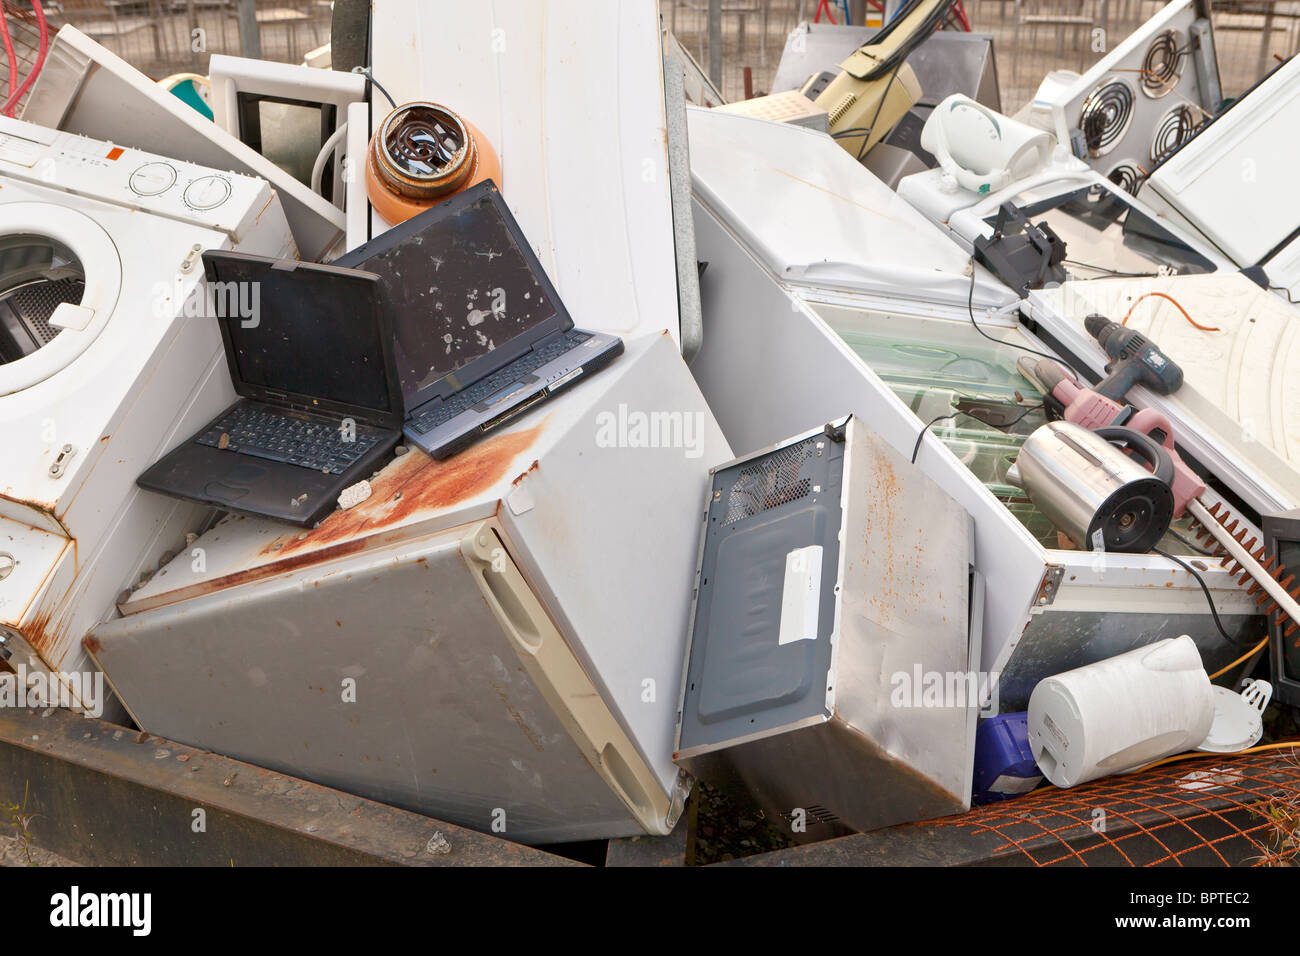 Home appliances for recycling - Stock Image